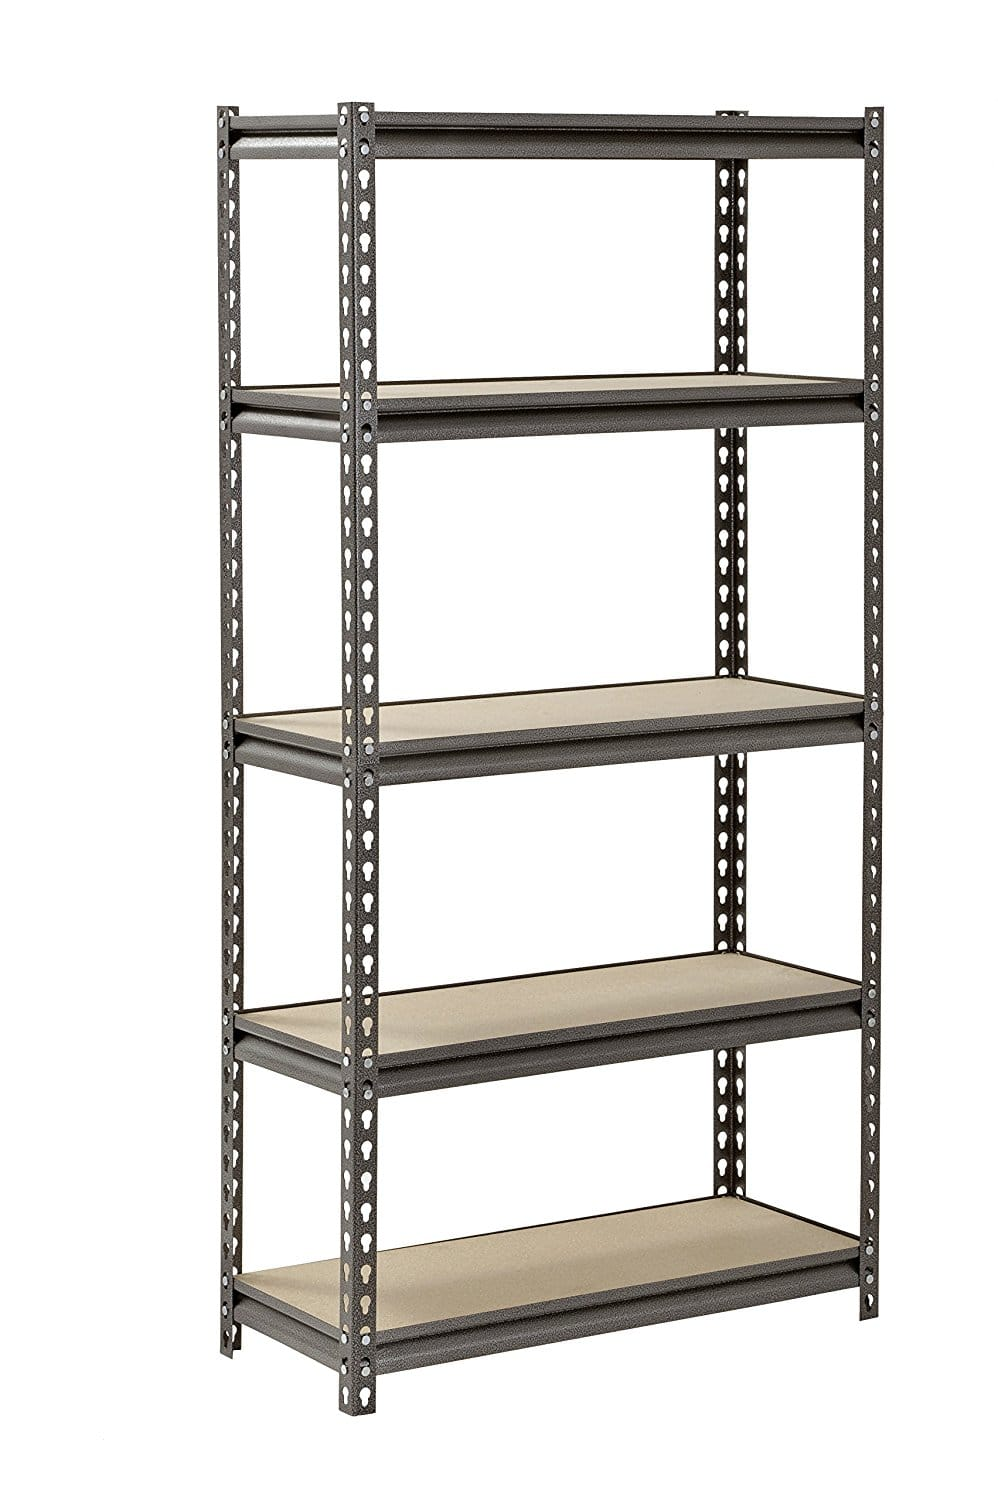 "Muscle Rack 5-Shelf Steel Storage Rack (30""x12""x60"") $30.15 + Free Shipping back in stock (ships in 1-2 weeks)"